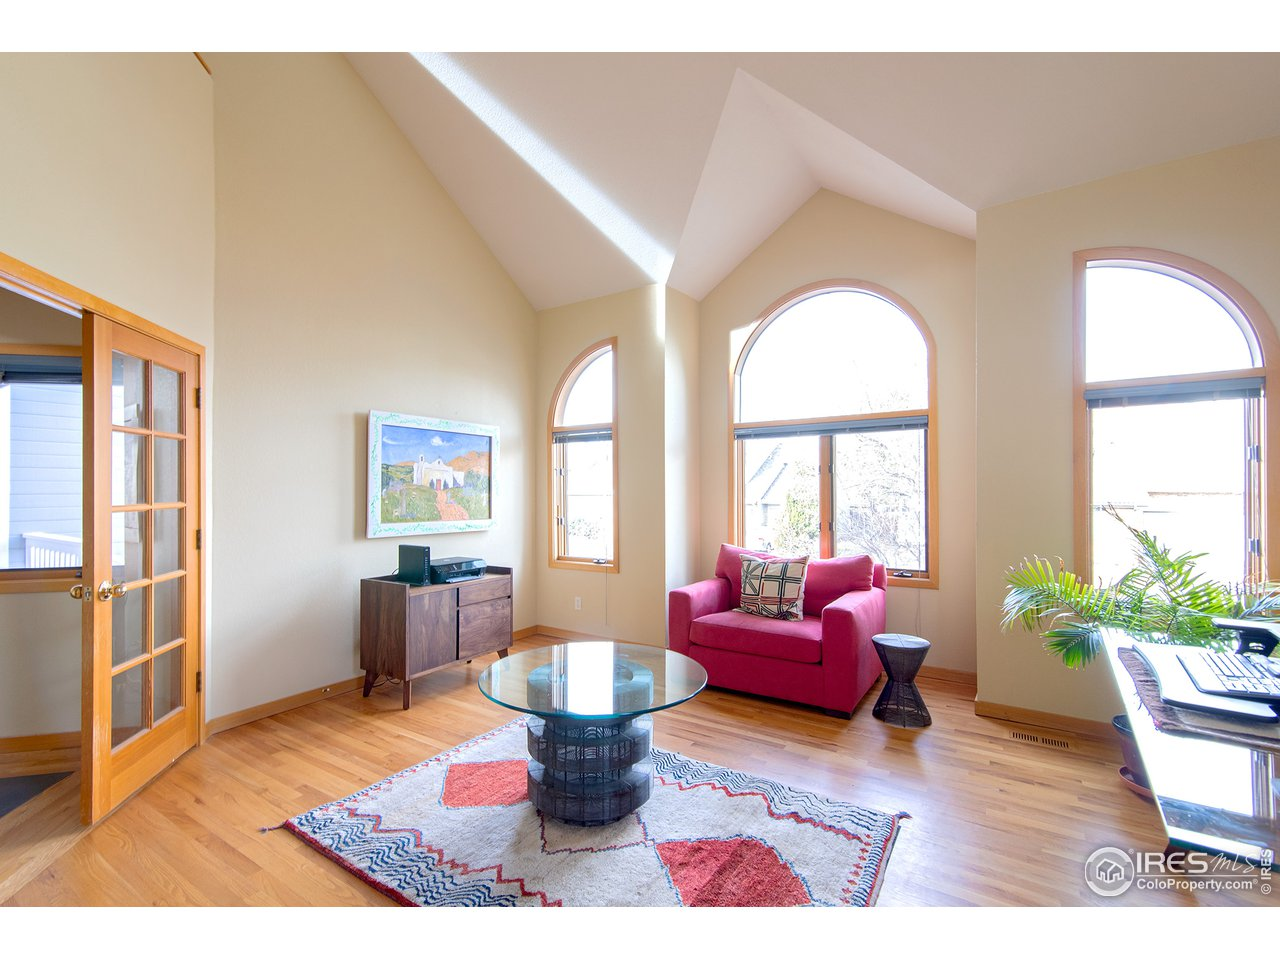 south facing windows & vaulted ceilings